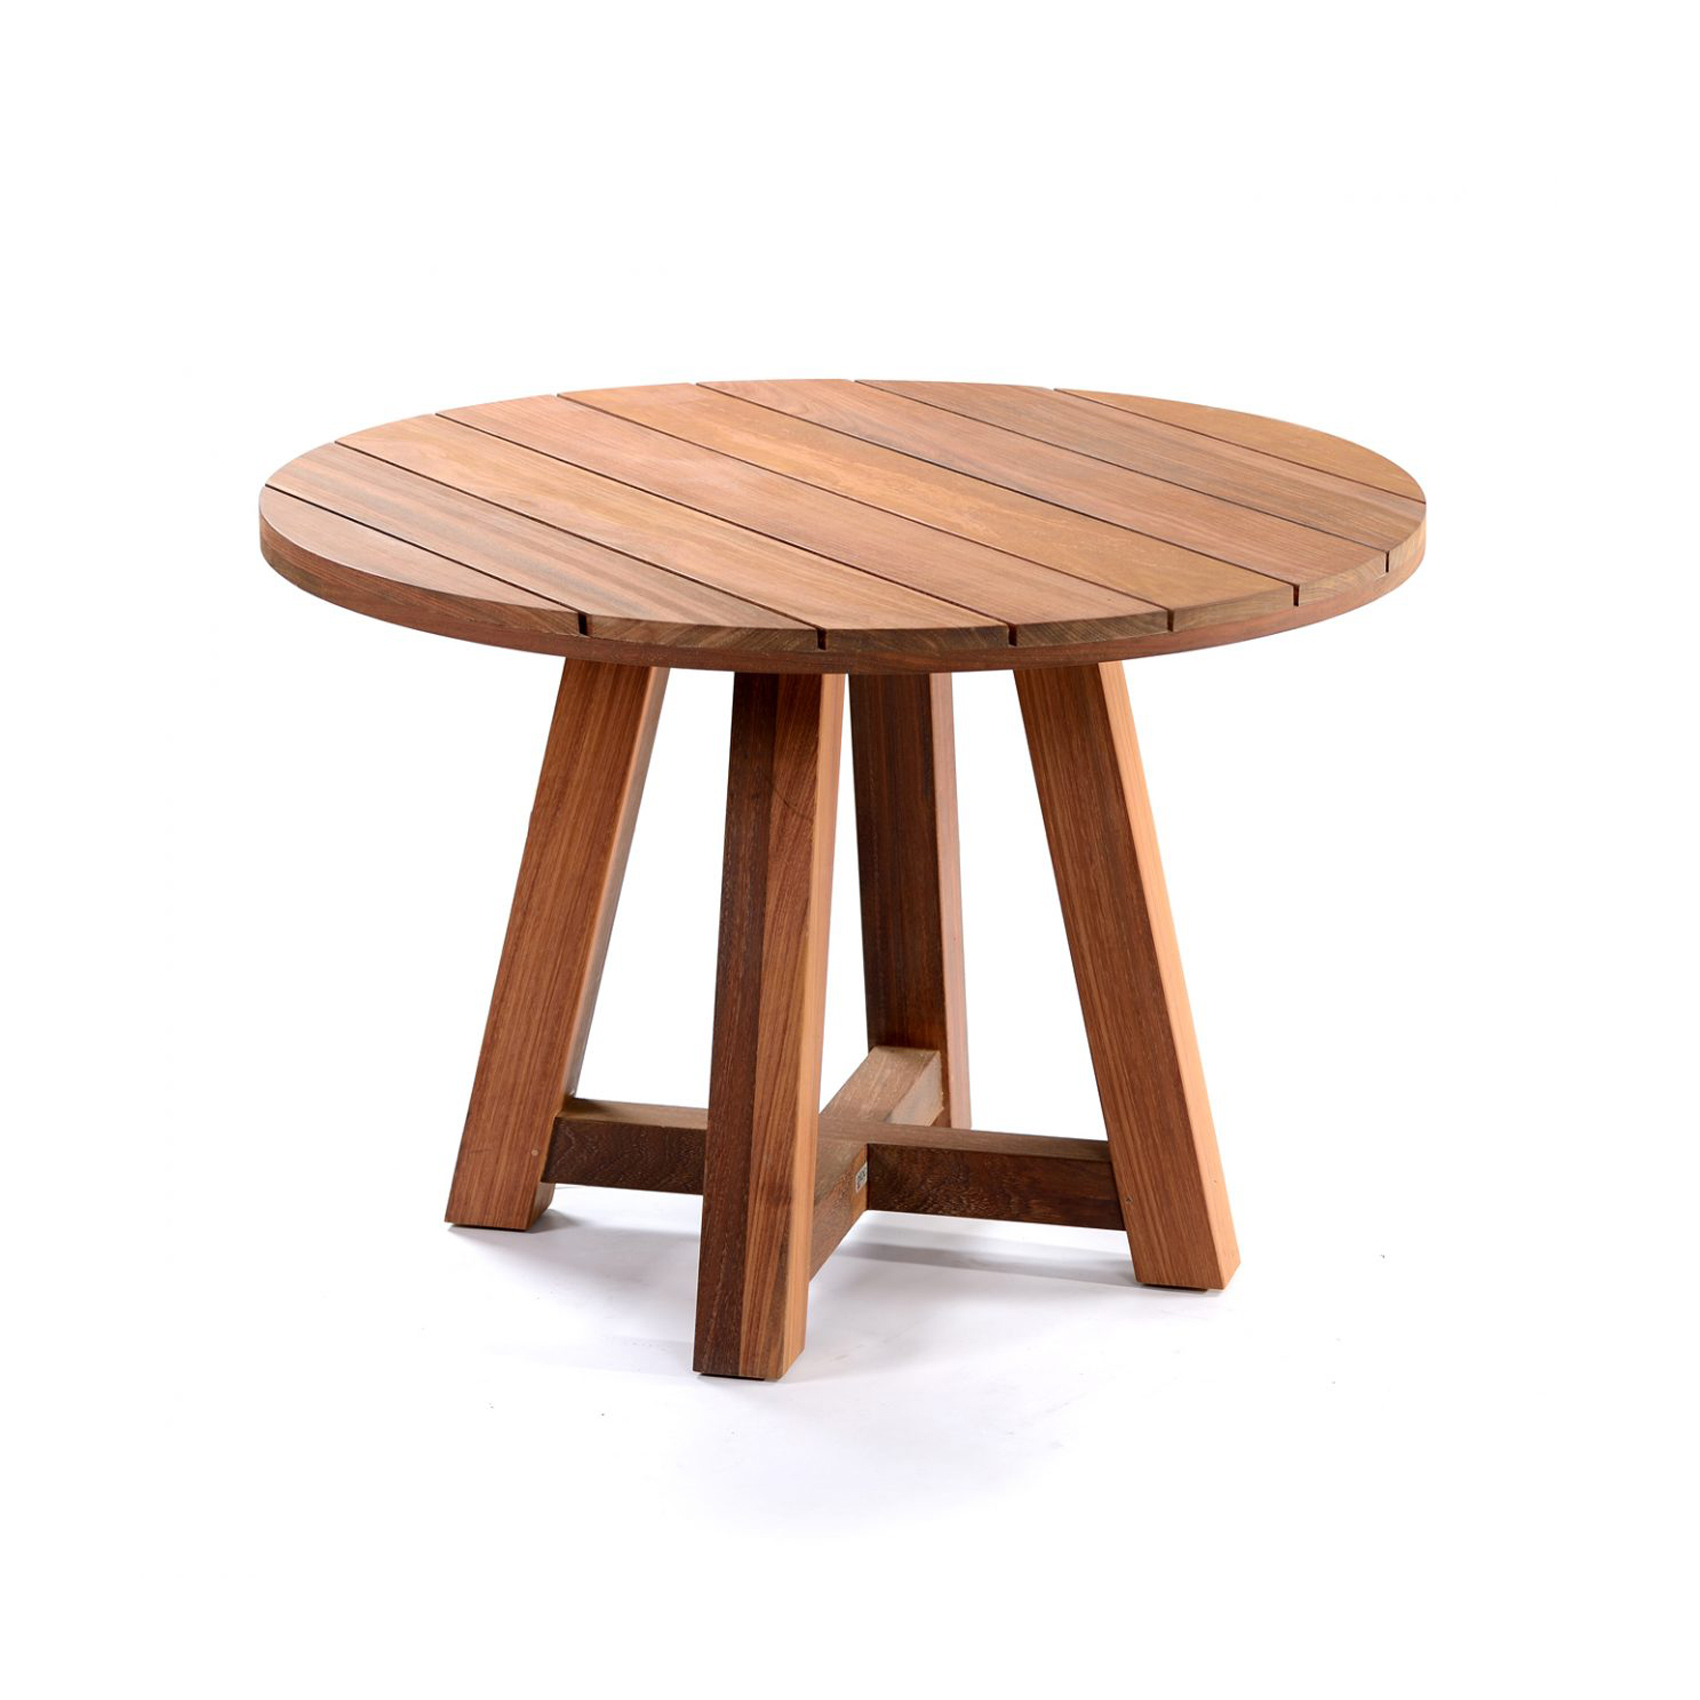 Outdoor Timber Table Mallorca Round Timber Table Bloc Outdoor